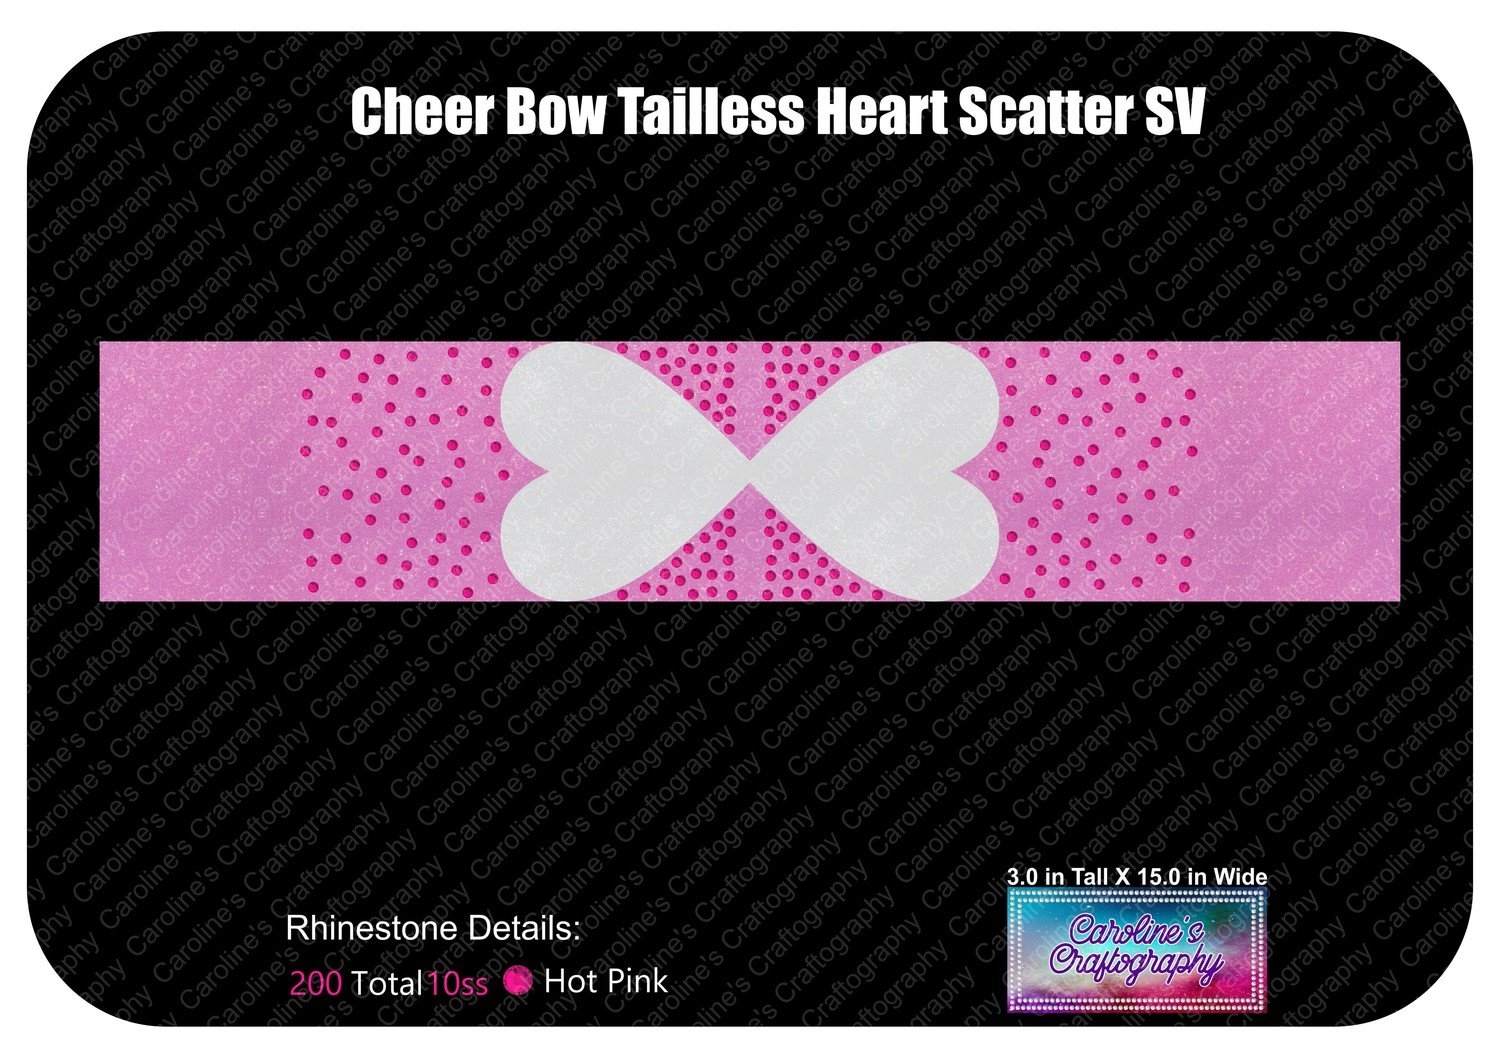 Tailless Cheer Bow Heart Scatter 3in Stone Vinyl